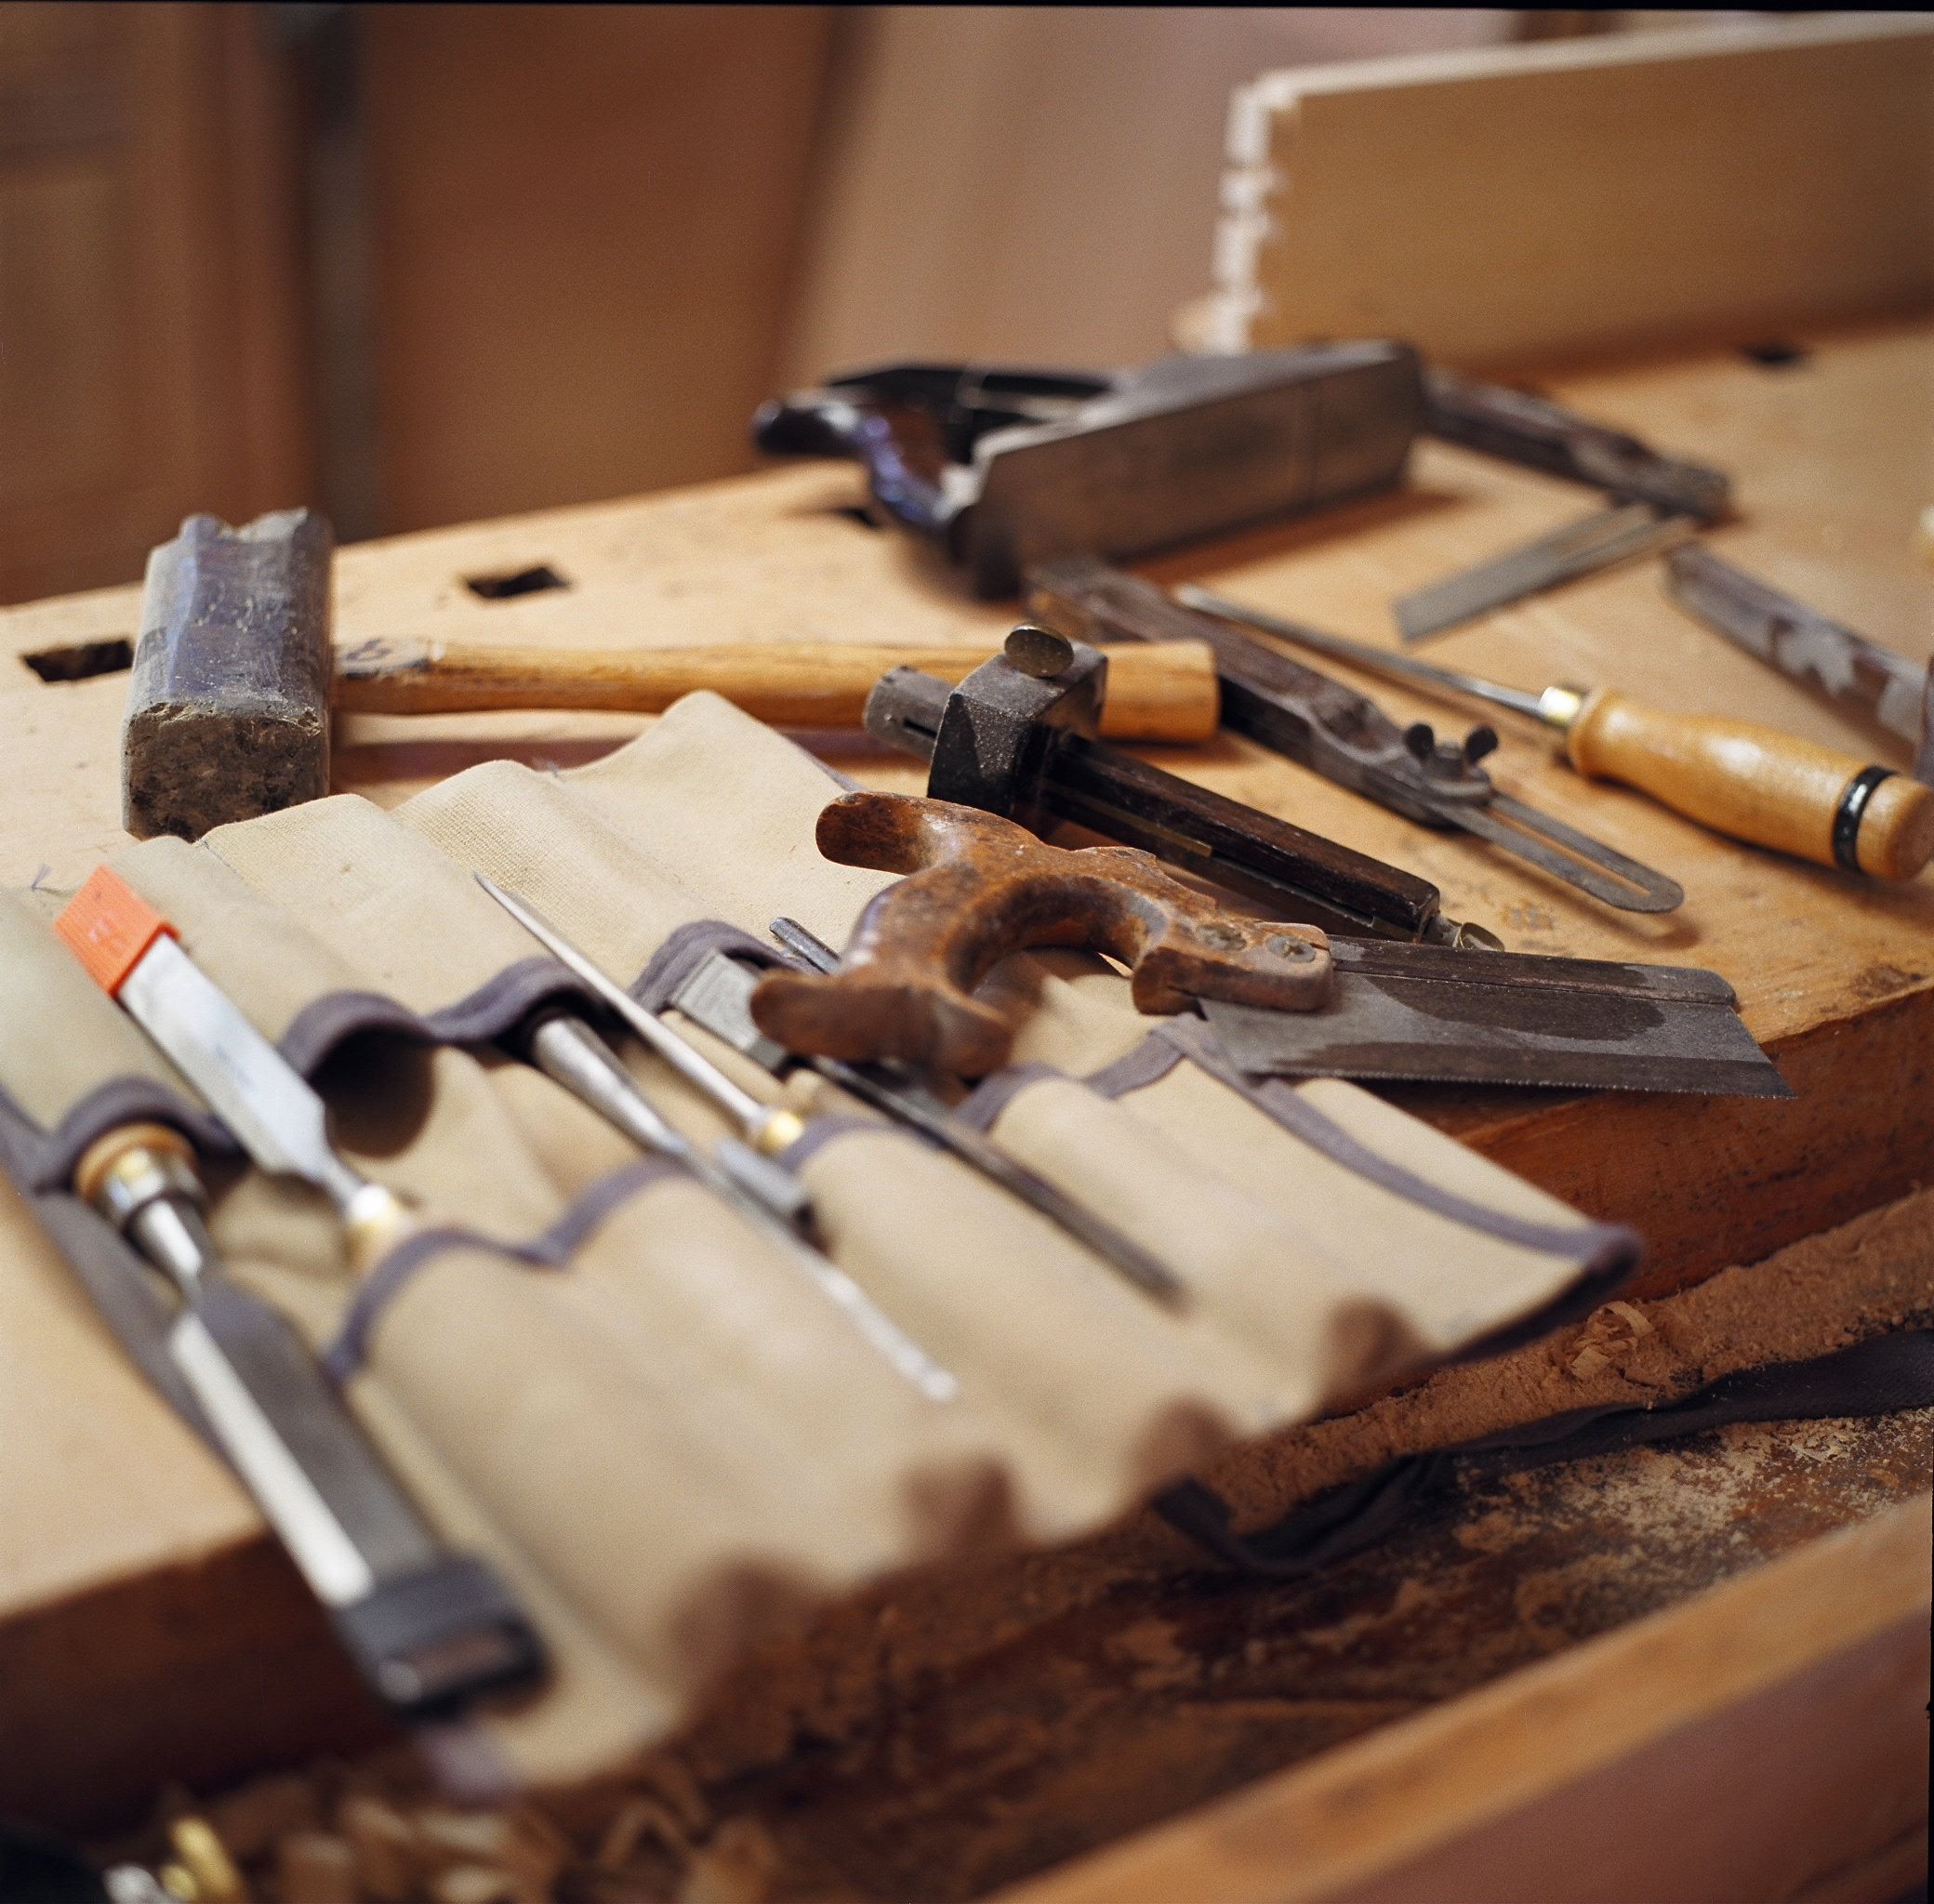 Hand-made-furnitue-Stephen-hand-tools.JPG